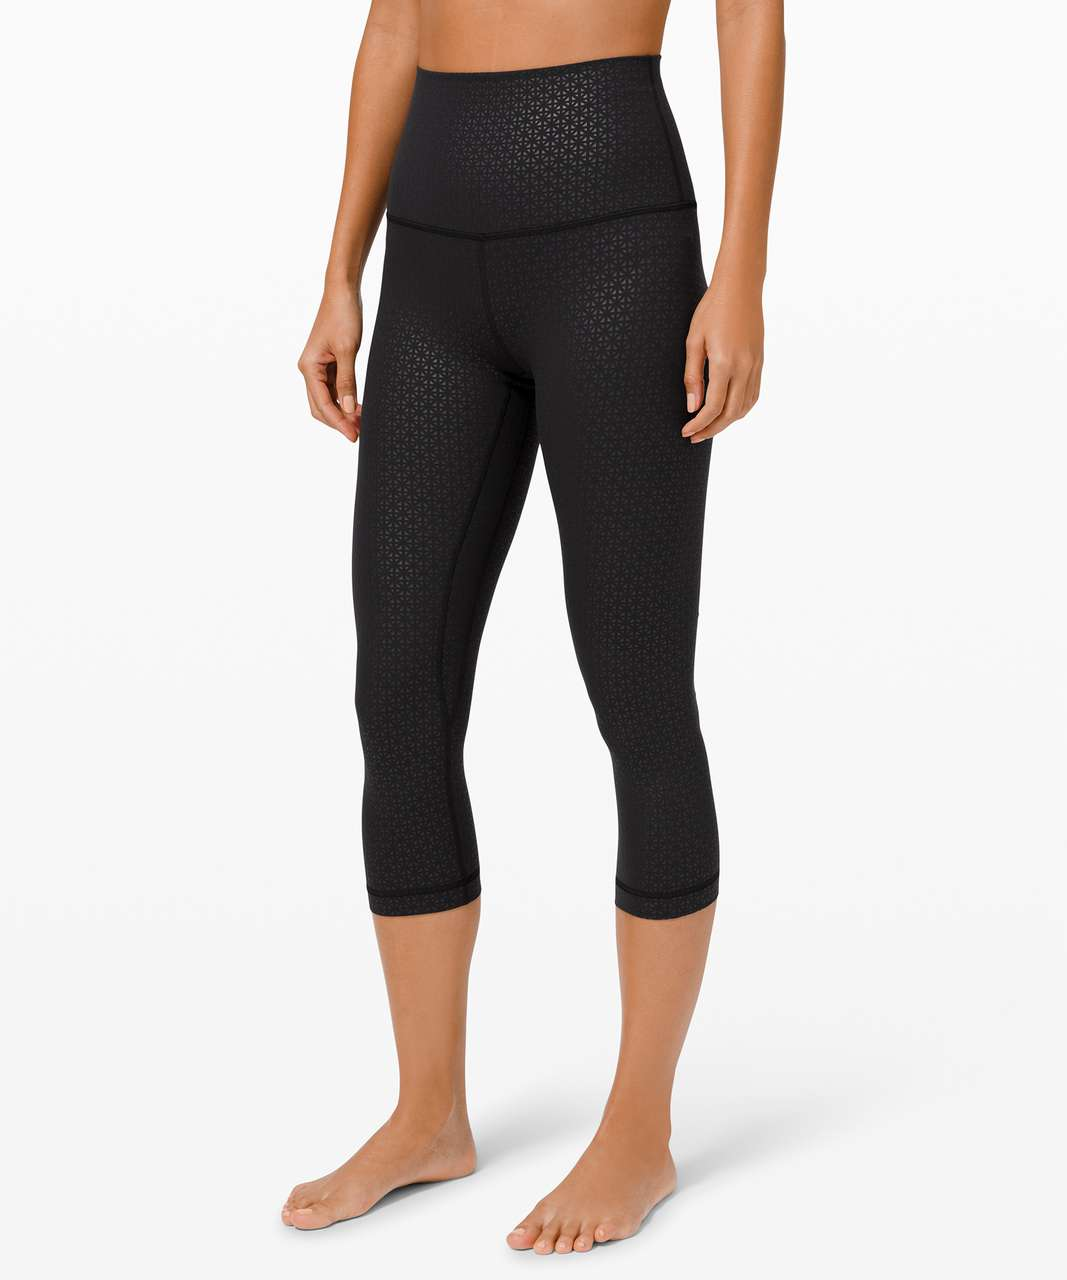 "Lululemon Align Super High-Rise Crop 21"" - Lattice Work Emboss Black"